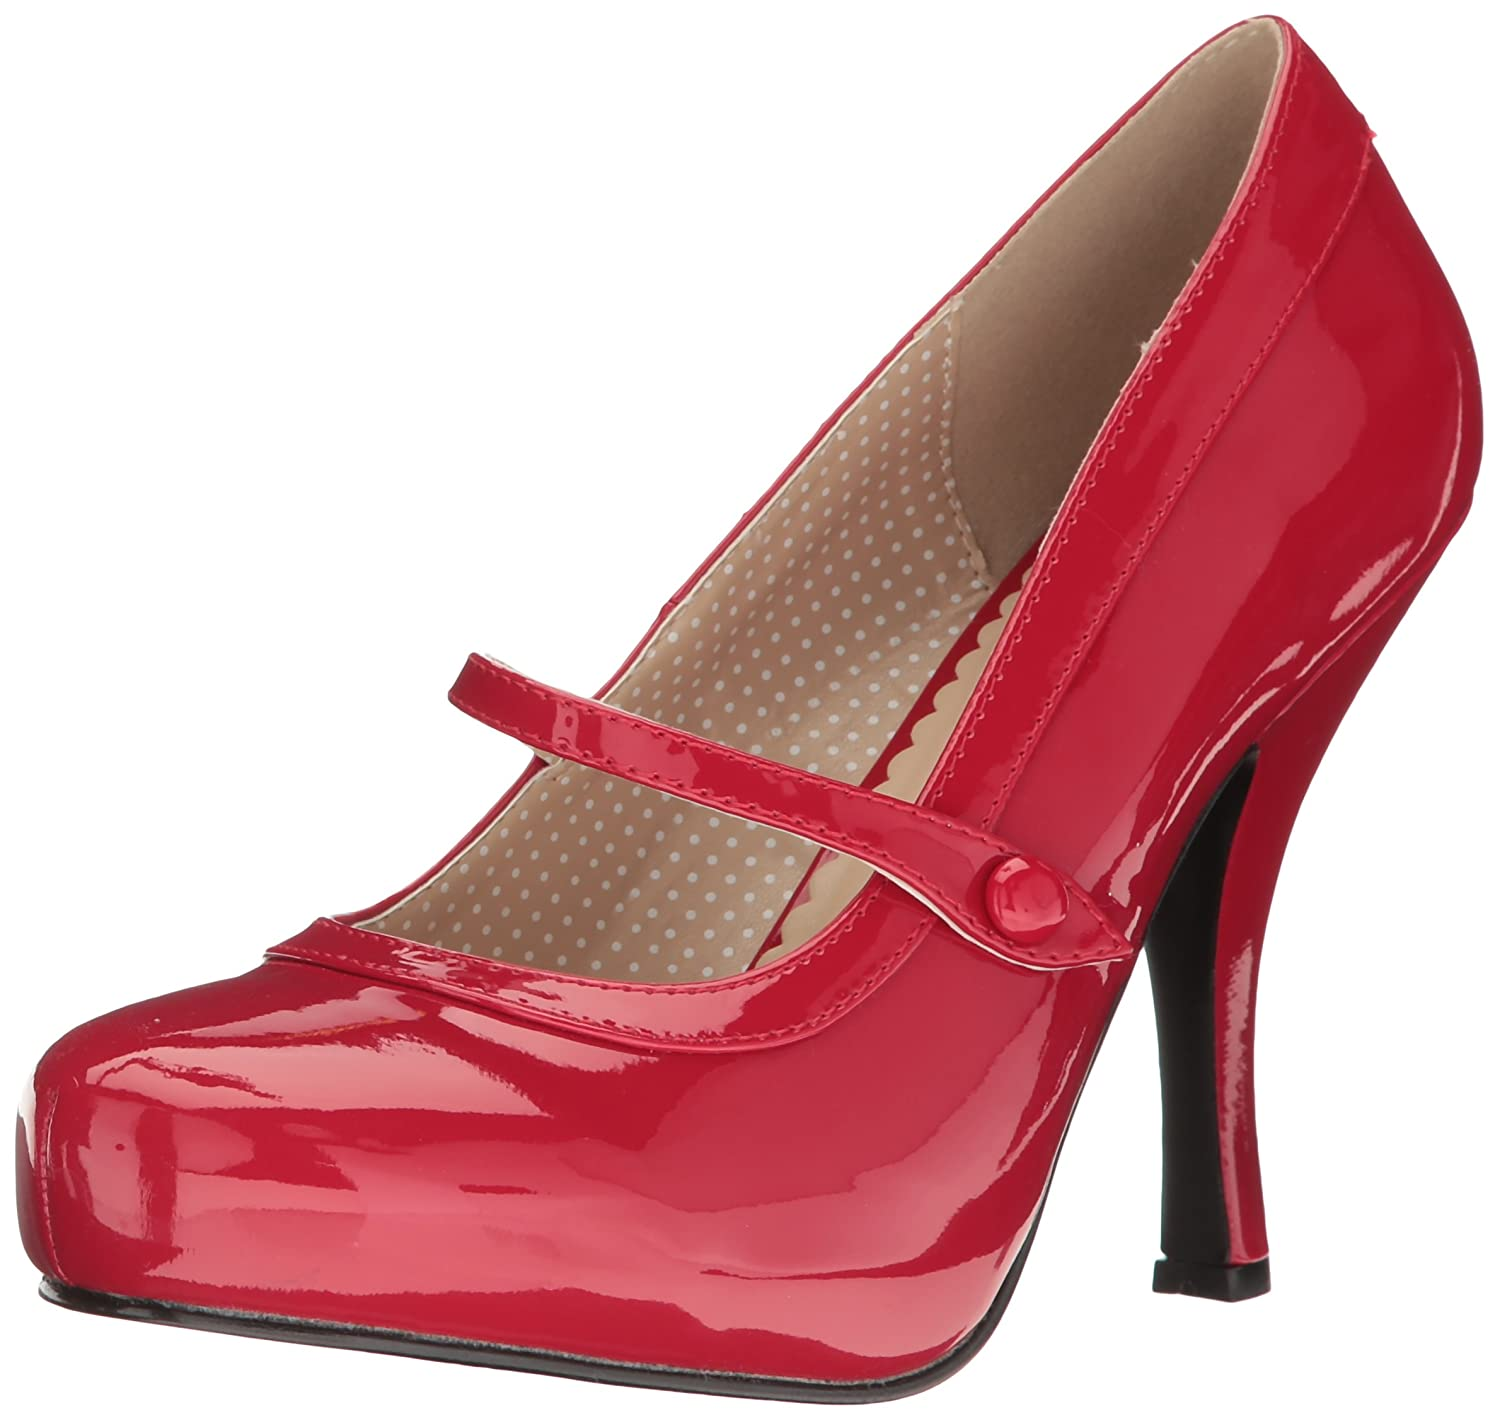 Pleaser Women's Pinup01/r Platform Pump B06XH3BDWP 15 B(M) US|Red Patent